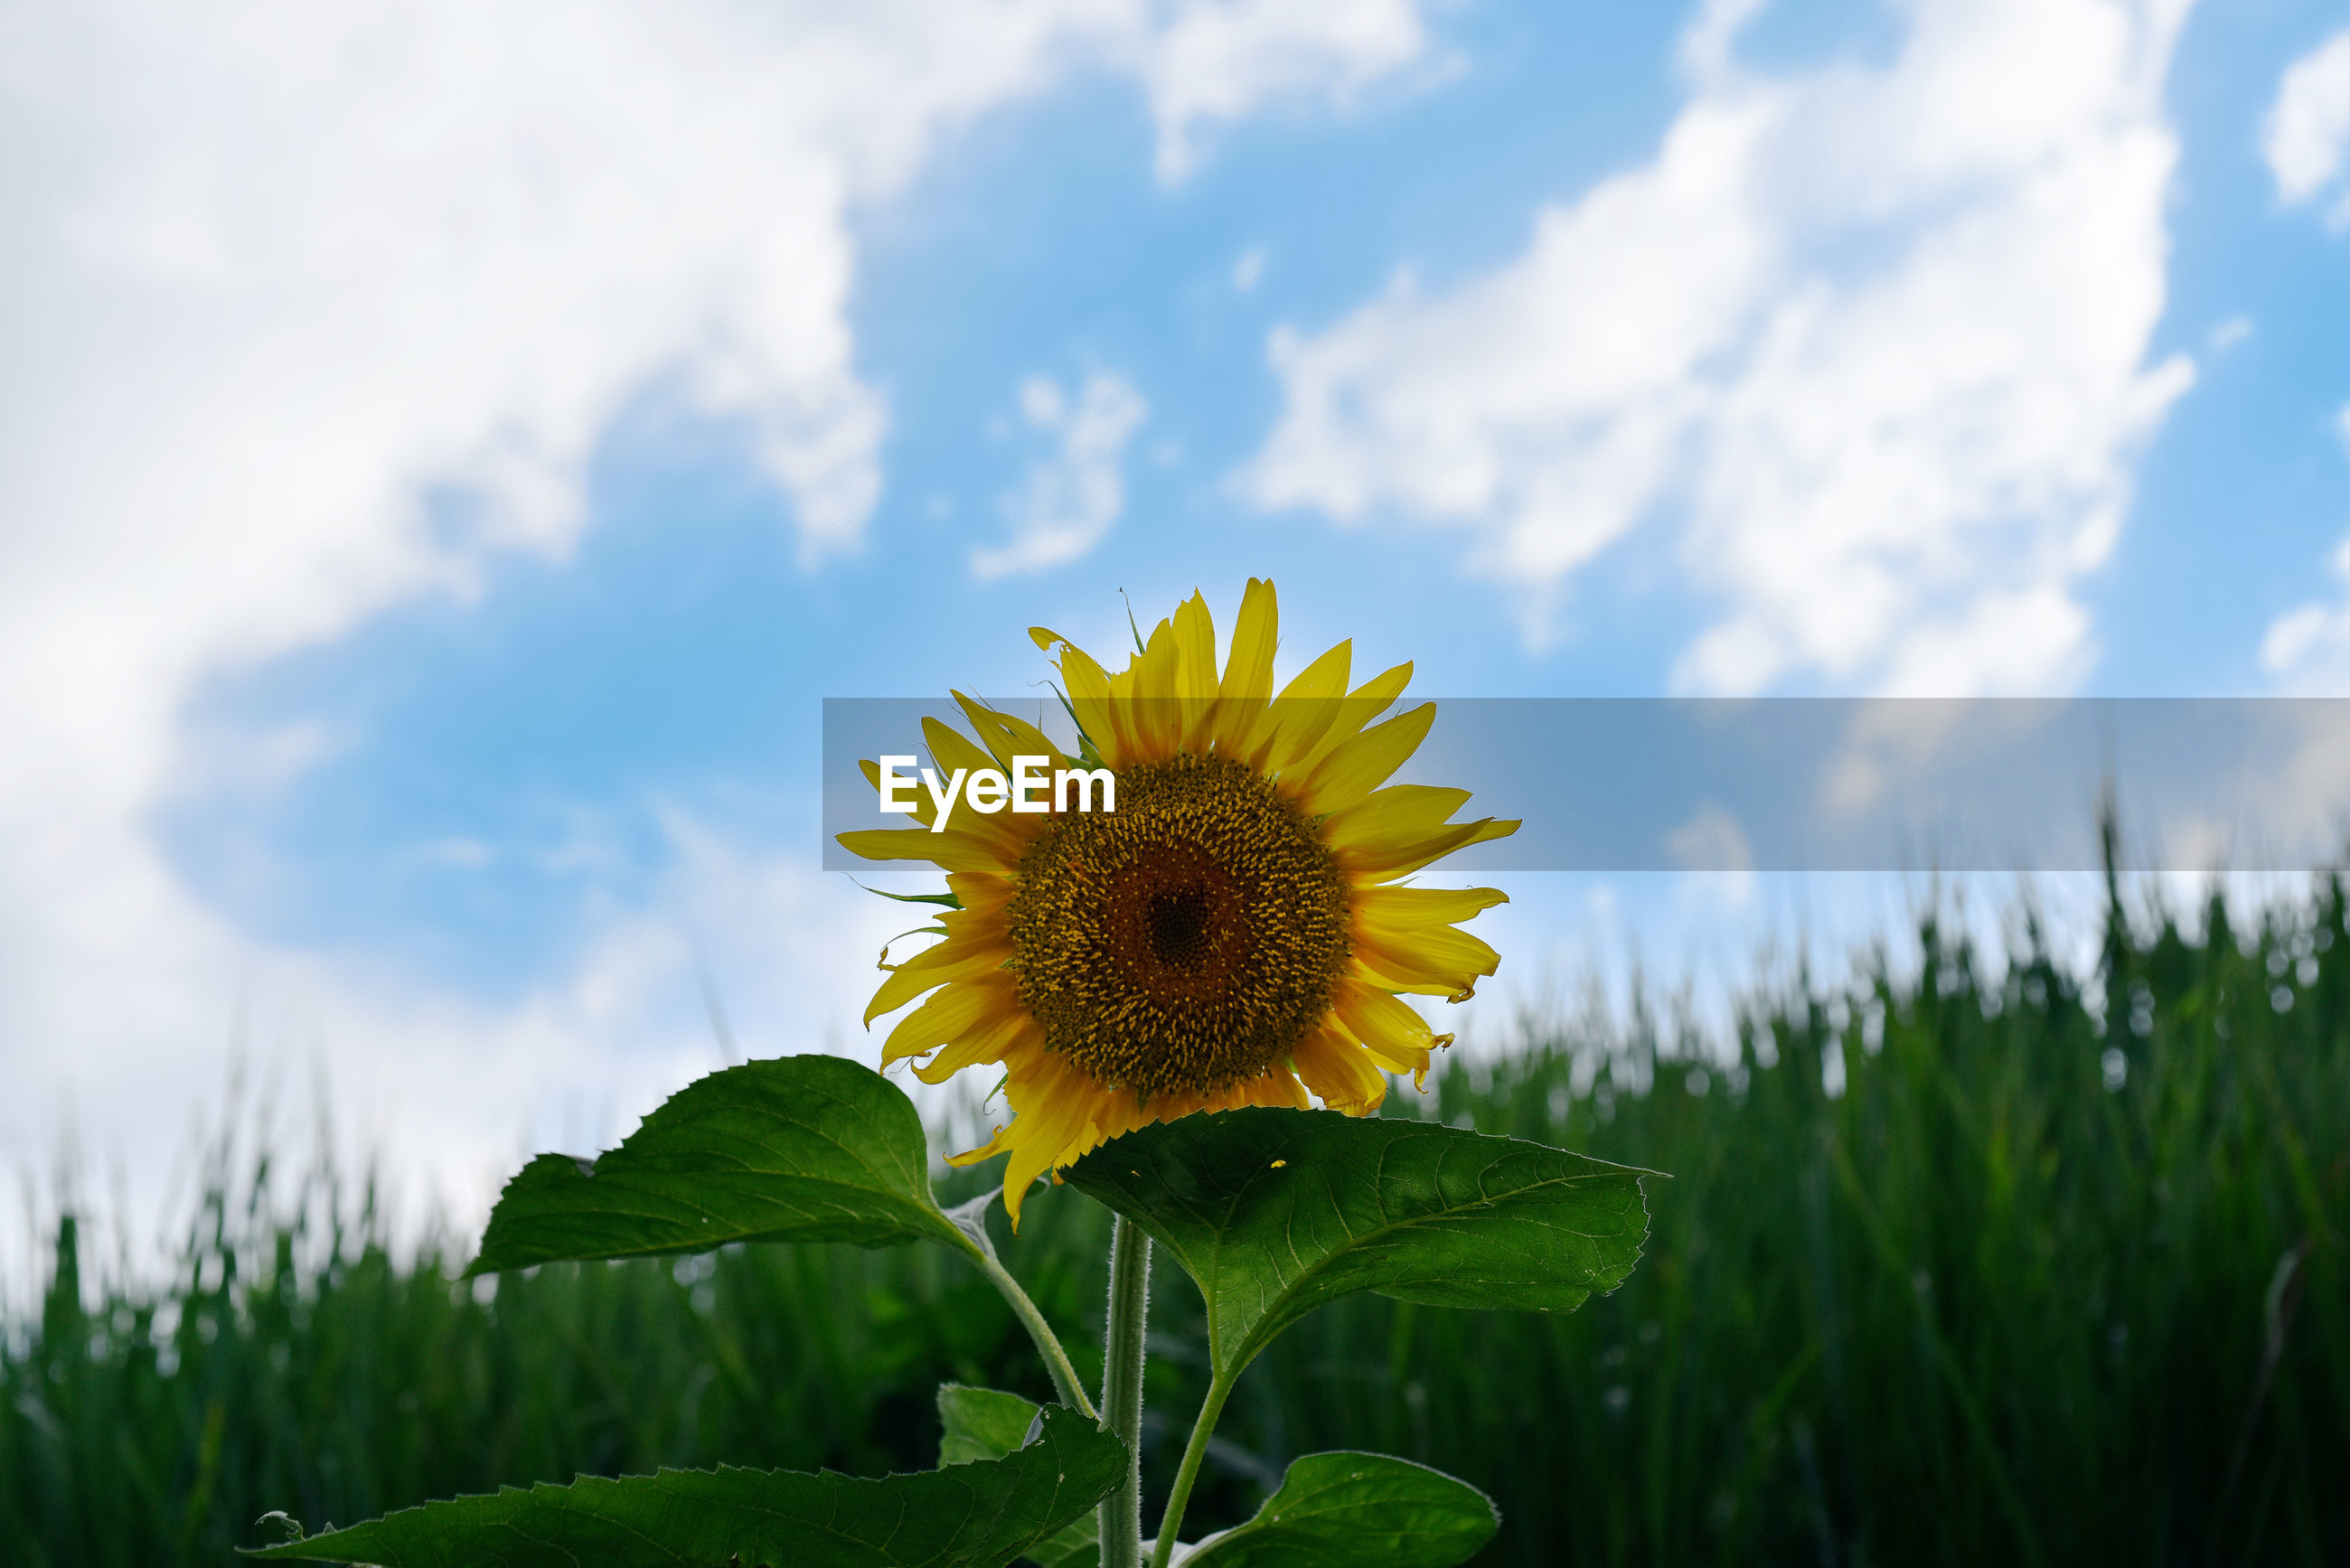 CLOSE-UP OF SUNFLOWER AGAINST CLOUDY SKY